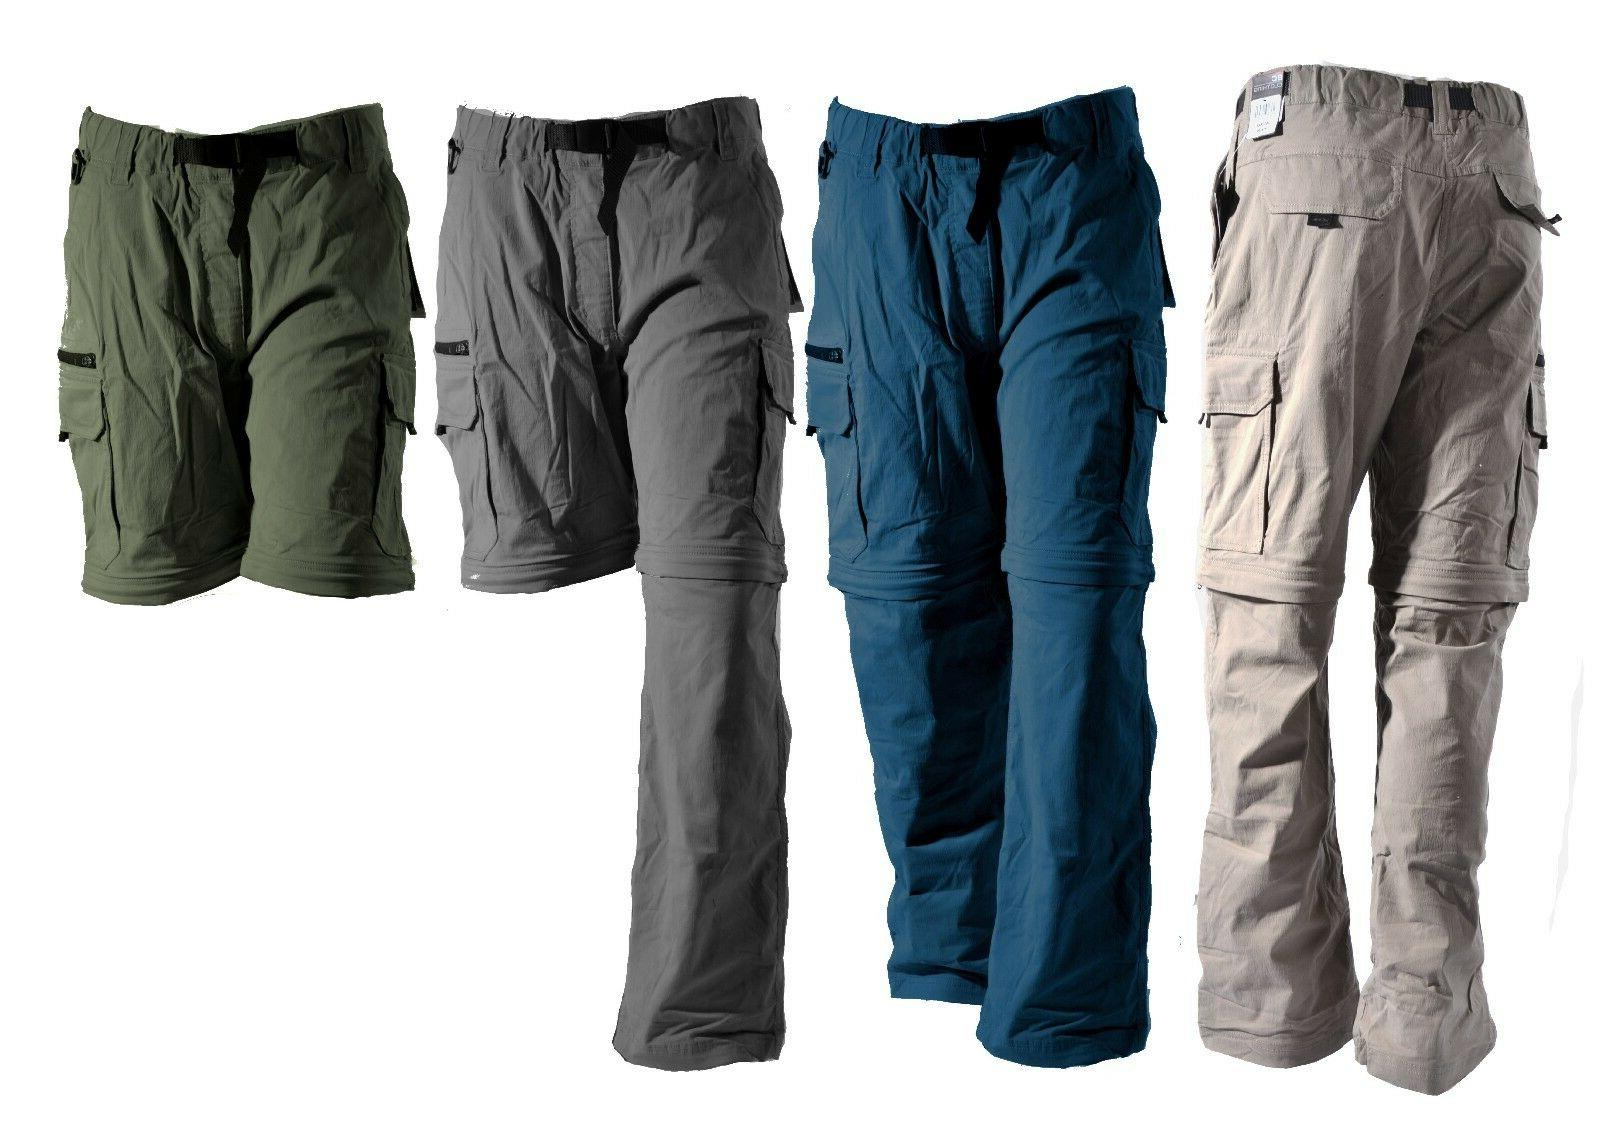 BC Clothing Mens Convertible Pants Zip-Off Cargo Shorts Hiki